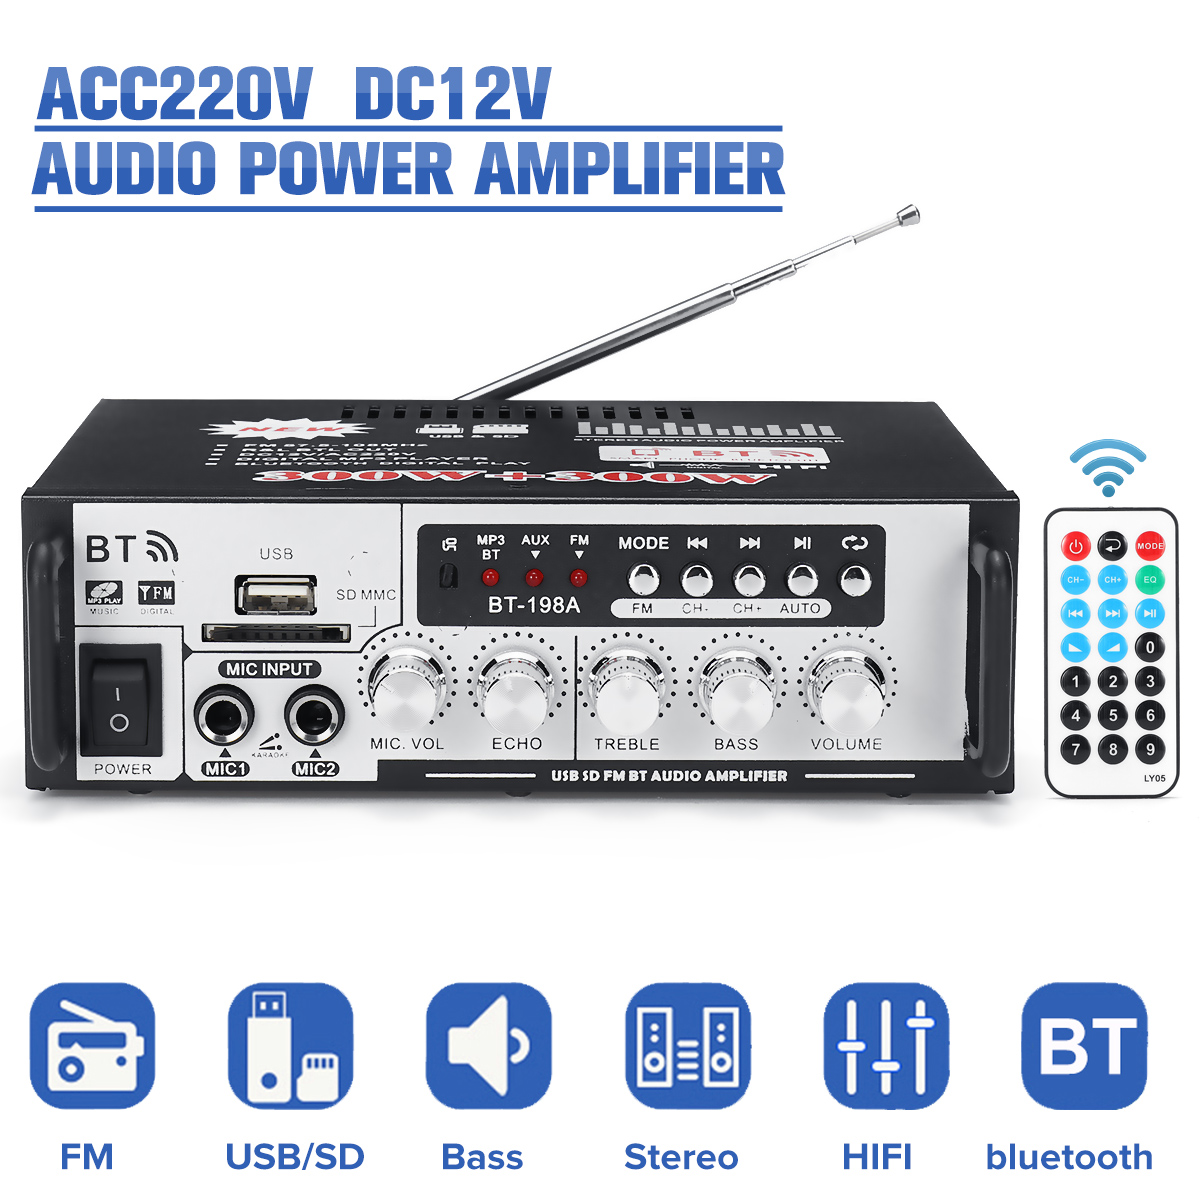 AC220V DC12V <font><b>HIFI</b></font> Power <font><b>Amplifier</b></font> Wireless bluetooth Bass Audio FM Radio U Dish TF Card Power <font><b>Amplifier</b></font> Home <font><b>Amplifier</b></font> image